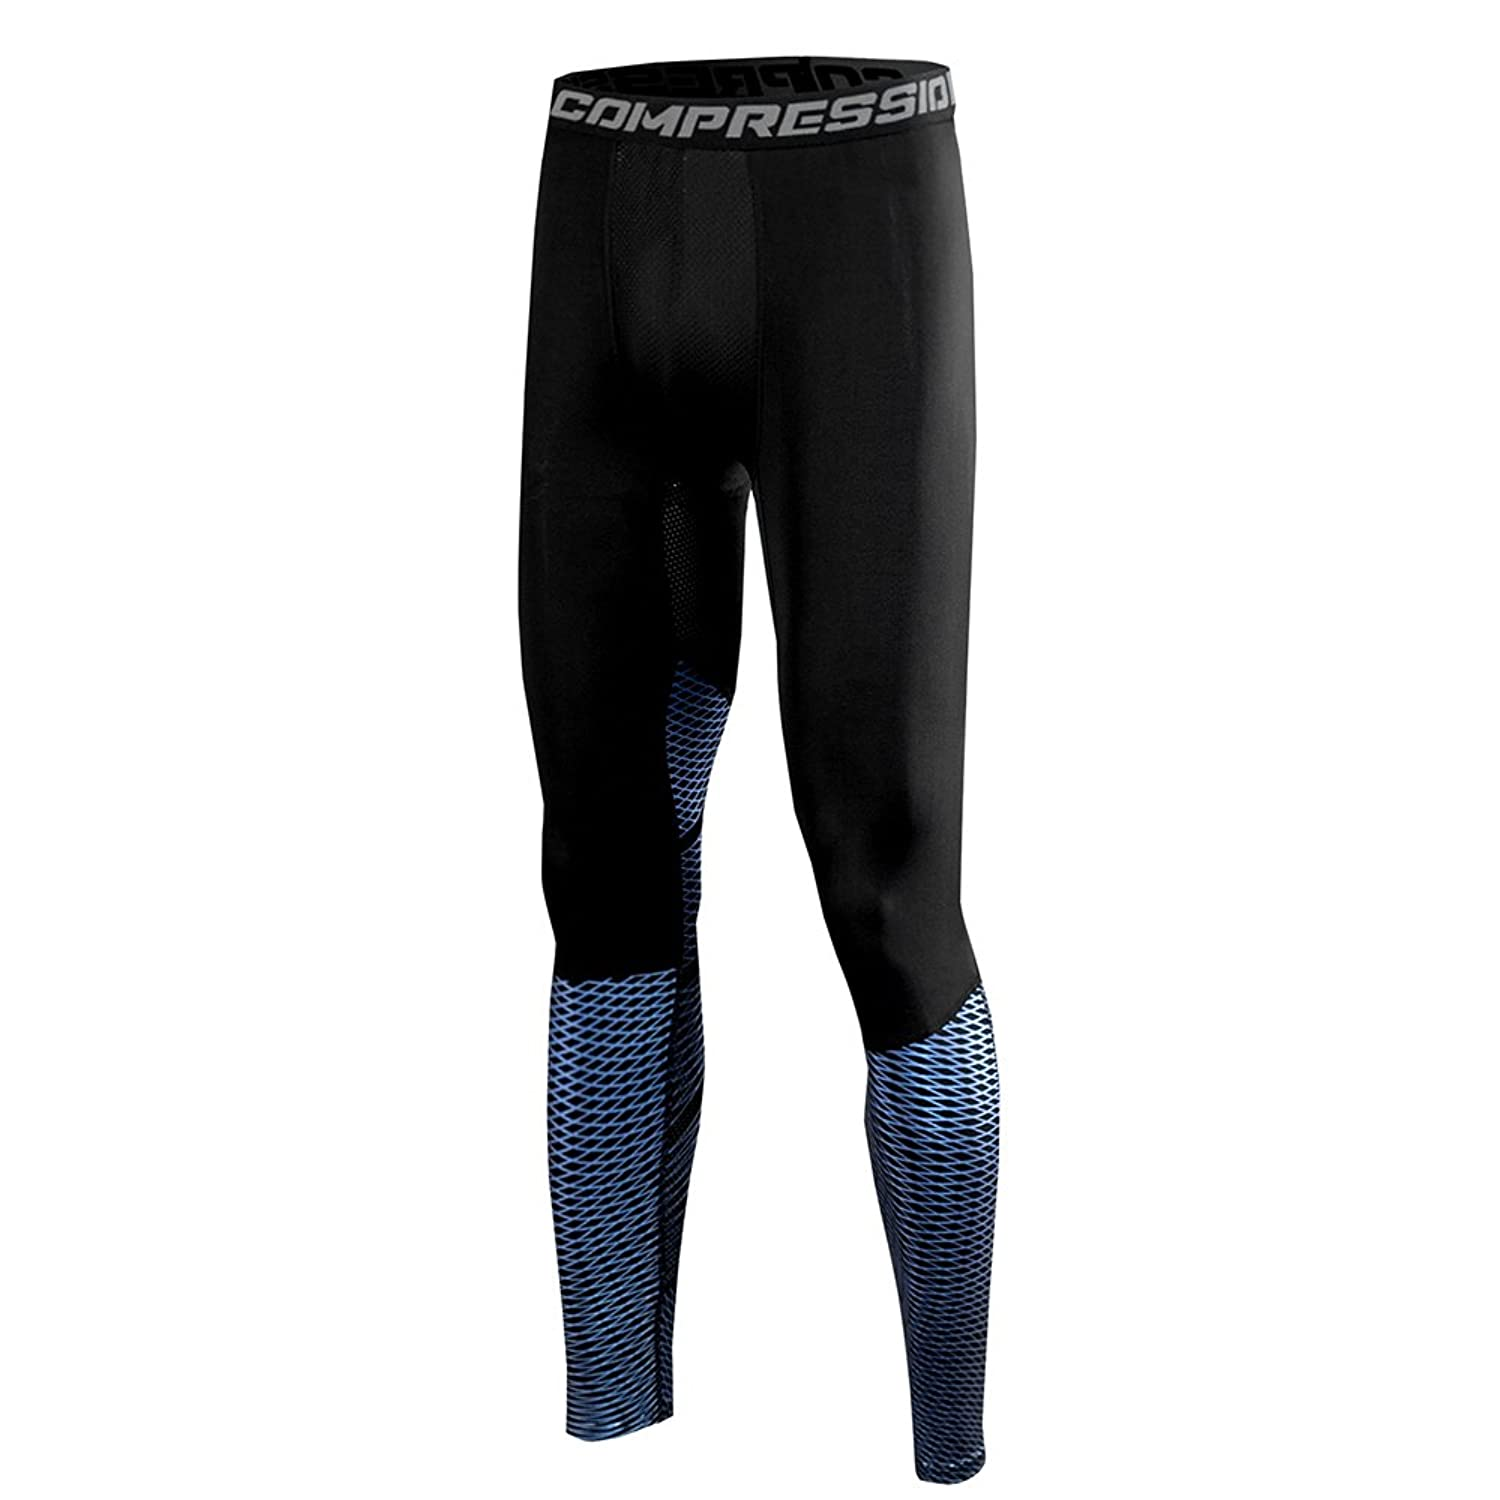 d41c22b615cc8 Amazon.com: 1Bests Men's Athletic Running Basketball Compression Pants  Fitness Quick-drying Pants Sports Tights Leggings: Clothing